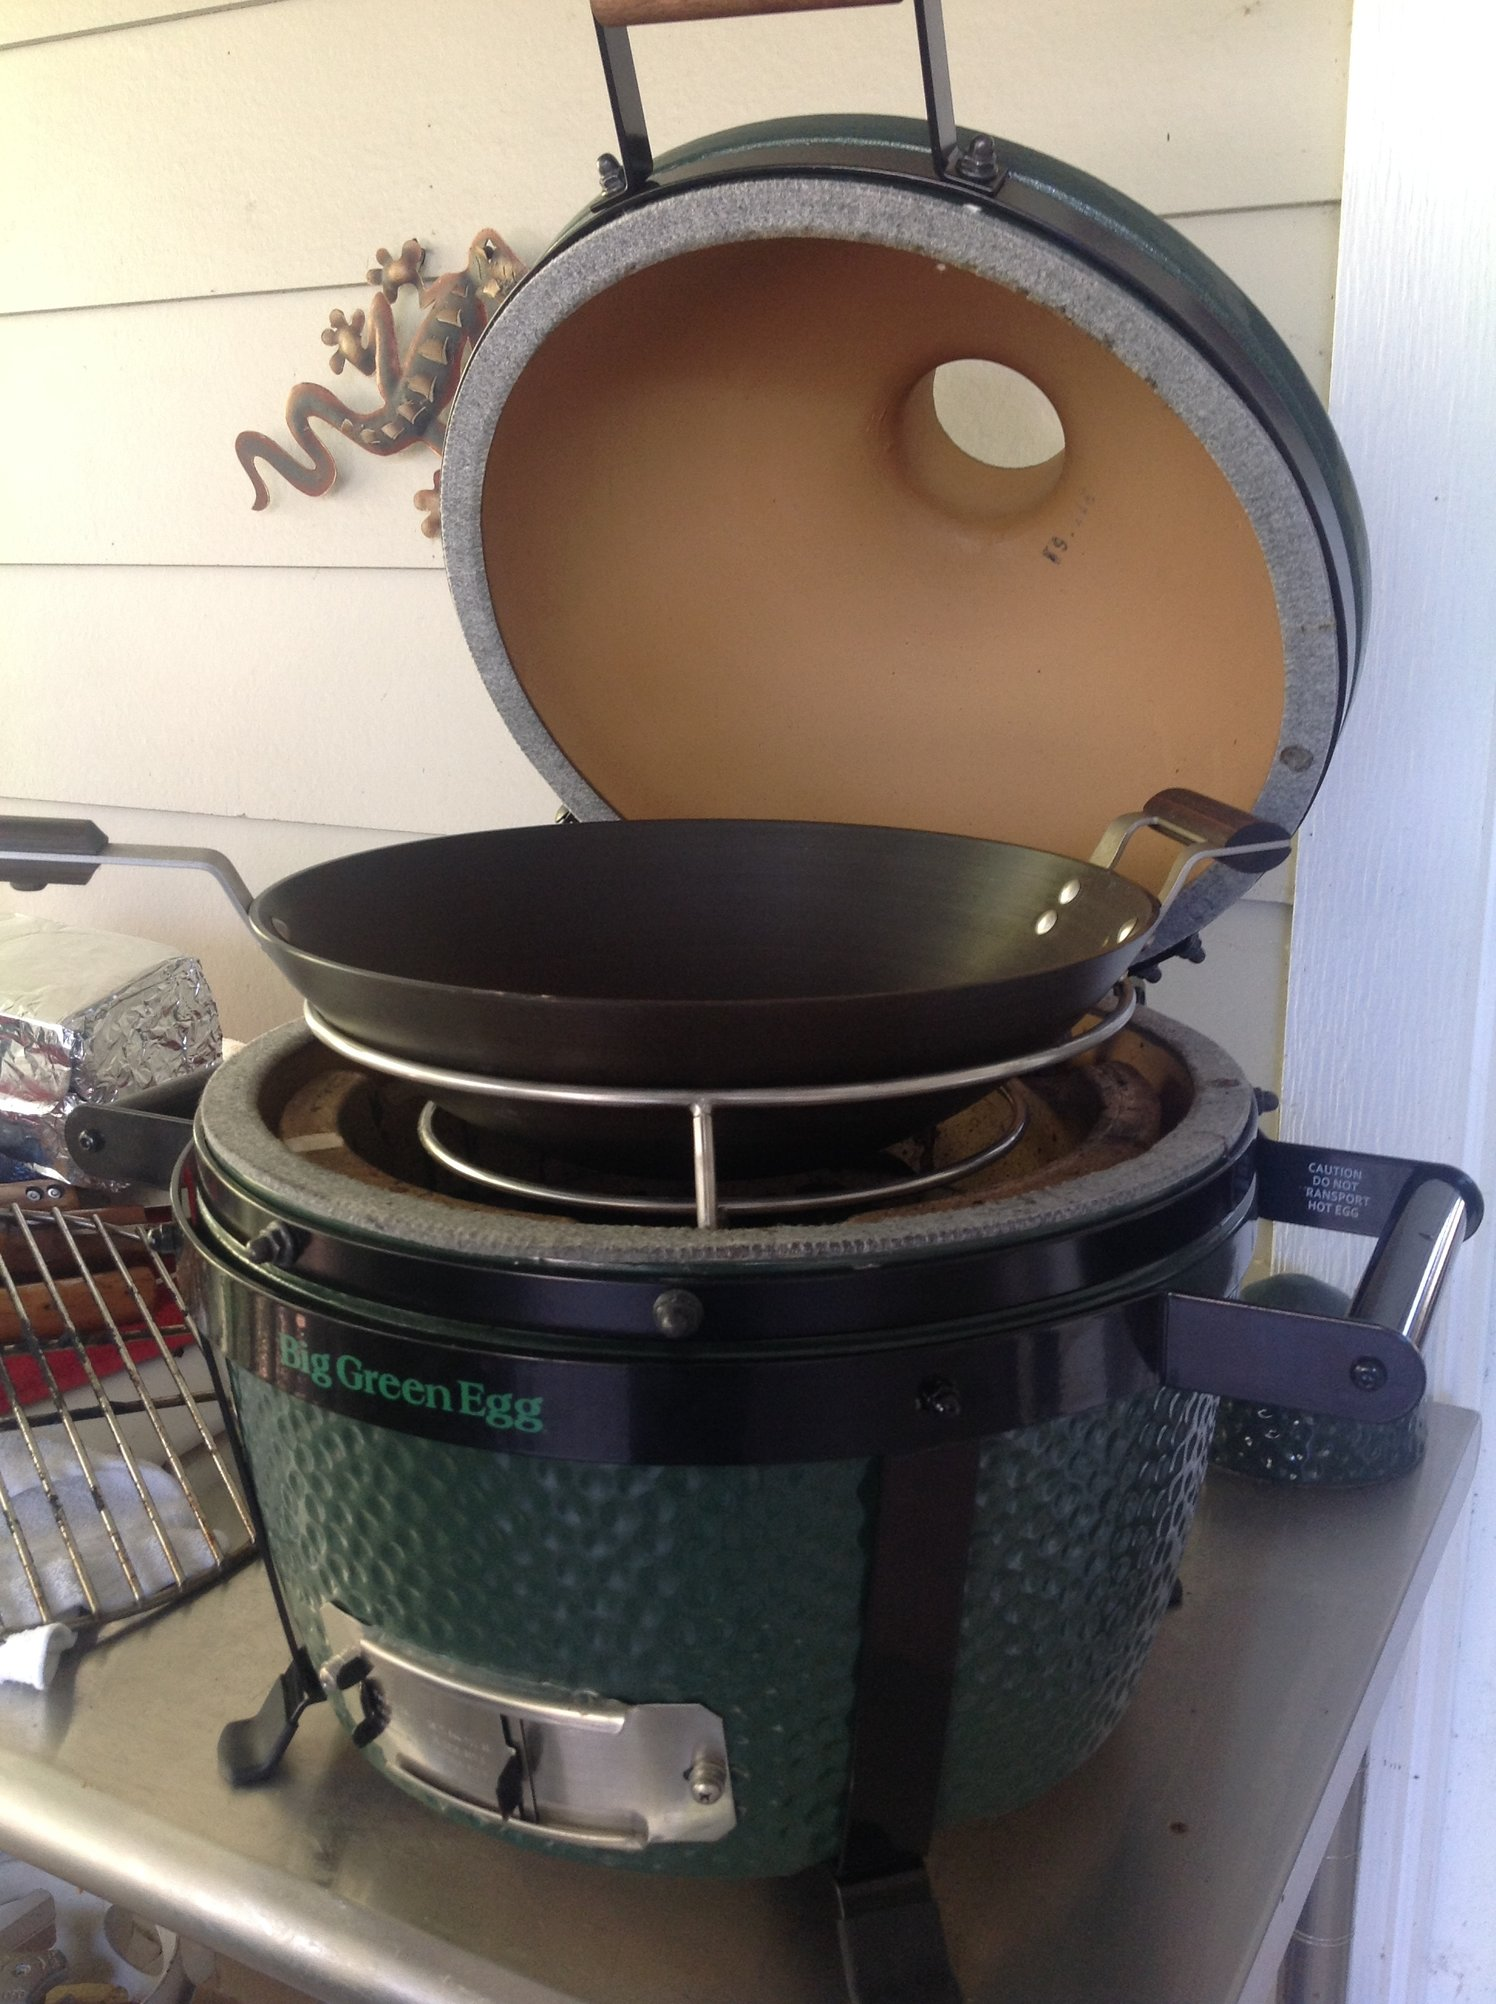 New Minimax And Bge Owner Looking For Accessories Big